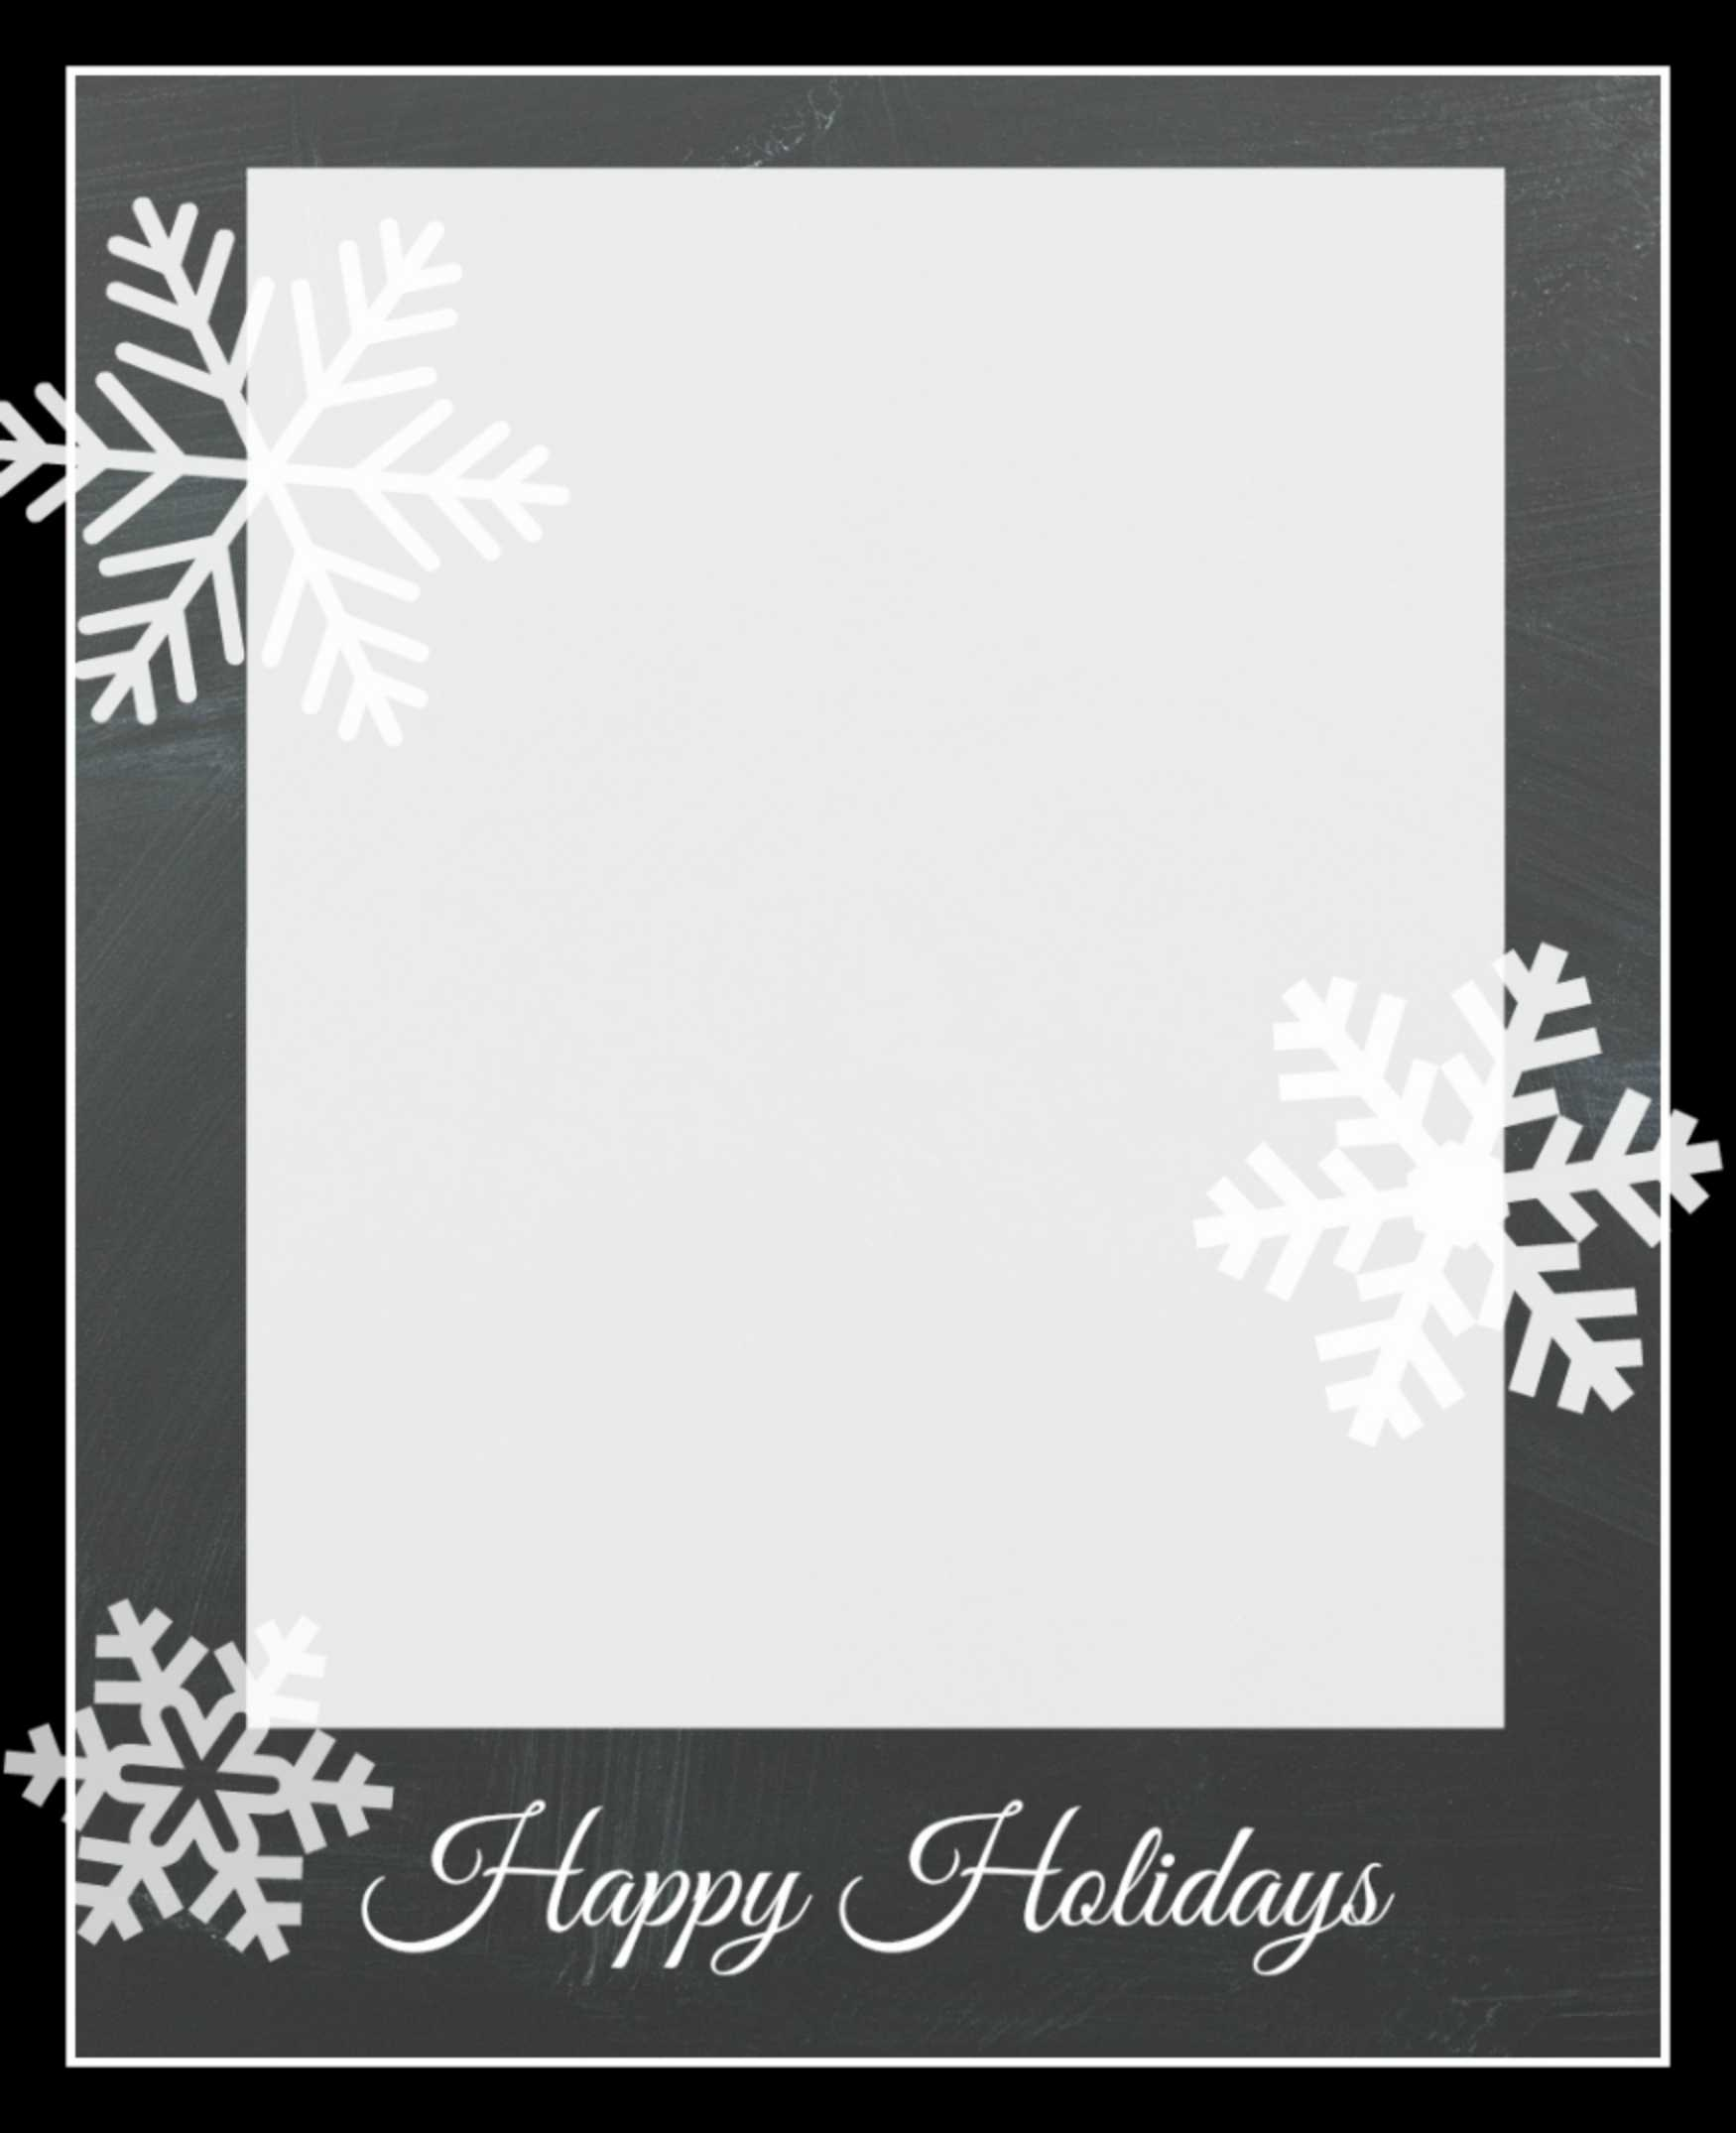 Free Christmas Card Templates - Crazy Little Projects with regard to Print Your Own Christmas Cards Templates